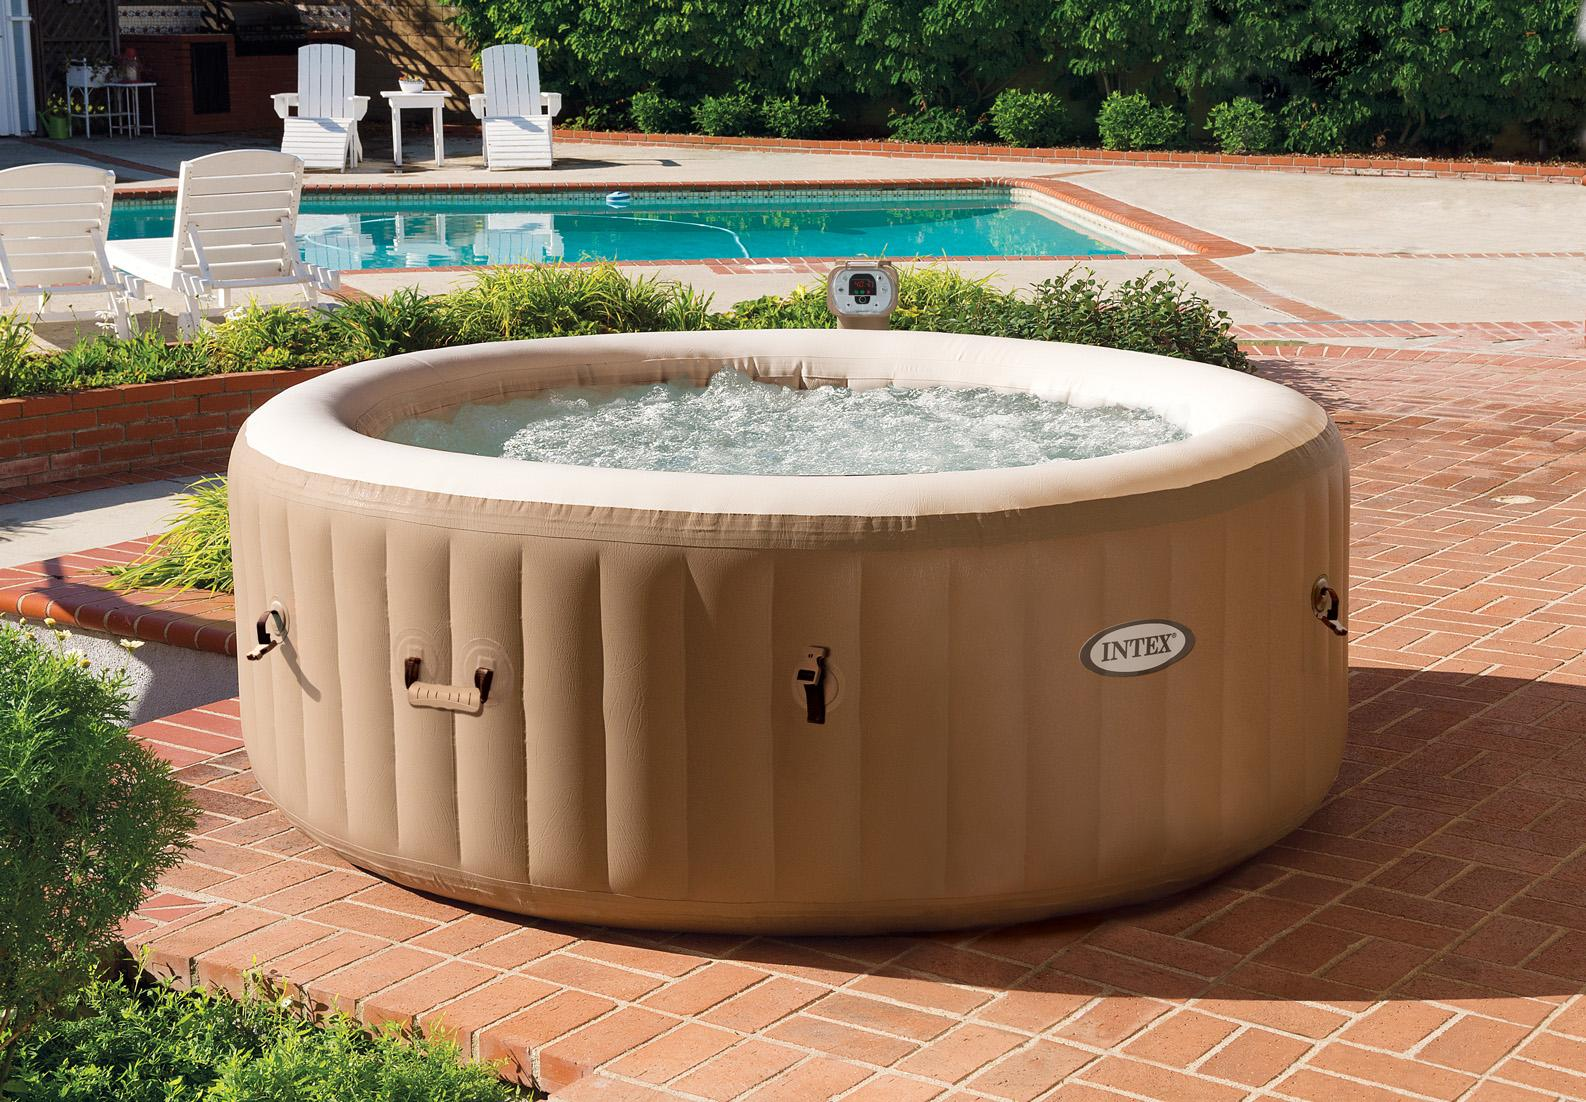 intex jacuzzi tubs hot tub bathtub cover pillow cleaner. Black Bedroom Furniture Sets. Home Design Ideas